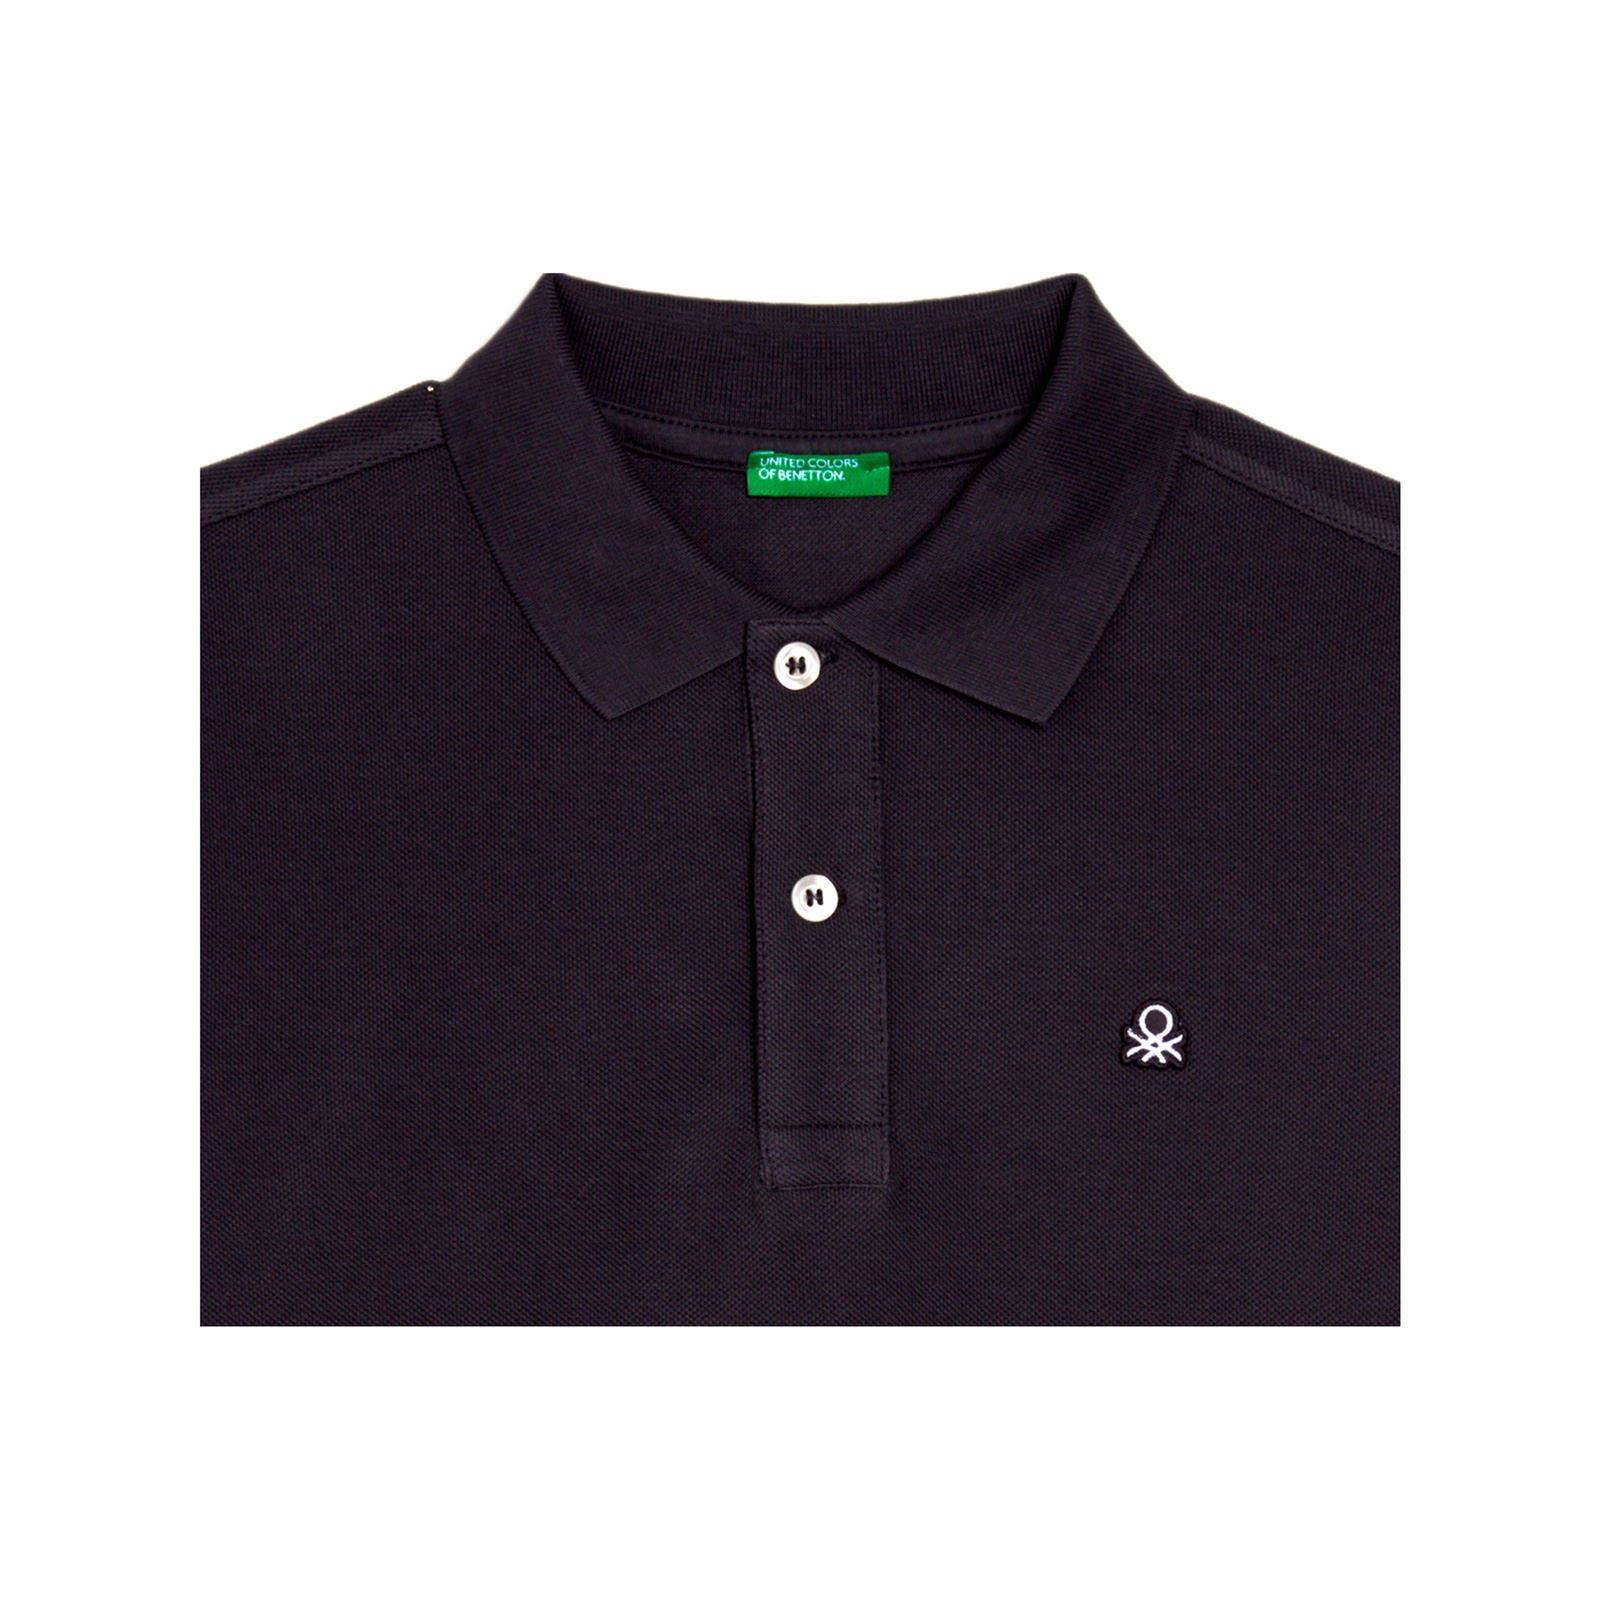 Polo Manches Polo Manches Courtes Courtes AnthraciteBrandalley Benetton Benetton nwkO08P